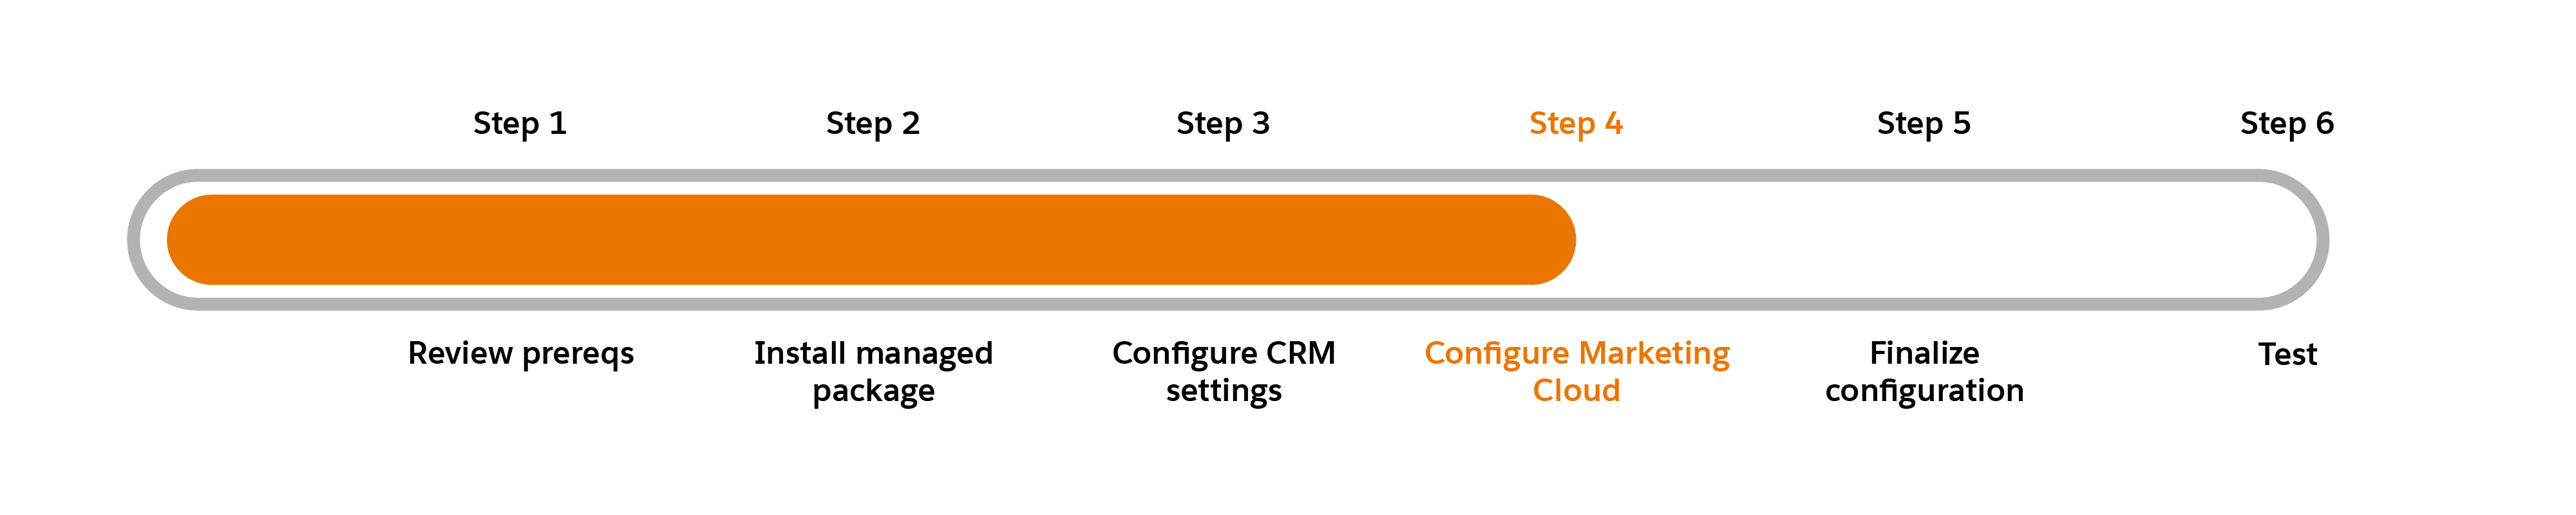 Progress chart with Step 4: Configure Marketing Cloud highlighted.